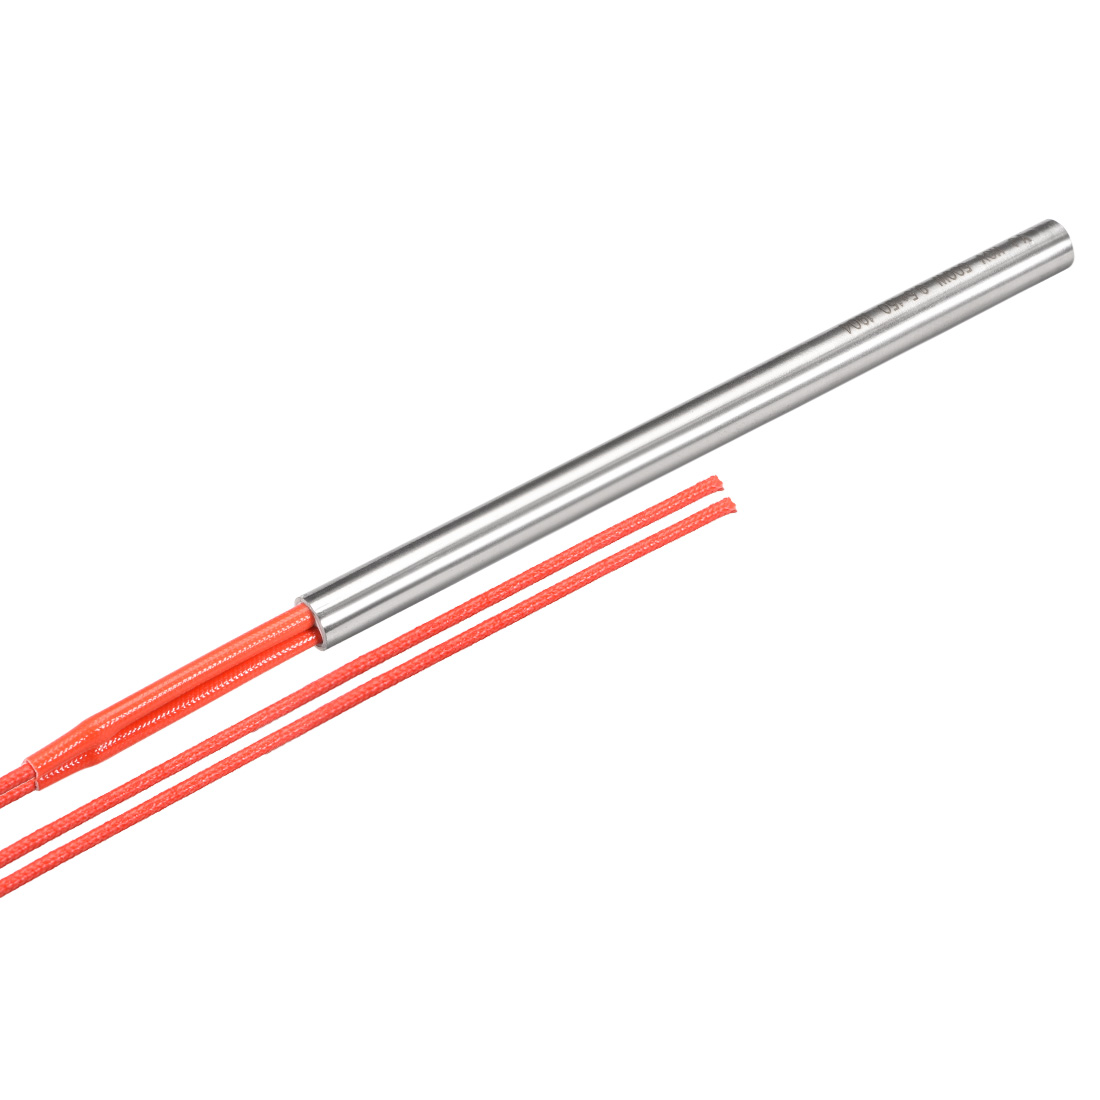 Cartridge Heater AC 110V 500w Stainless Steel Heating Element Replacement